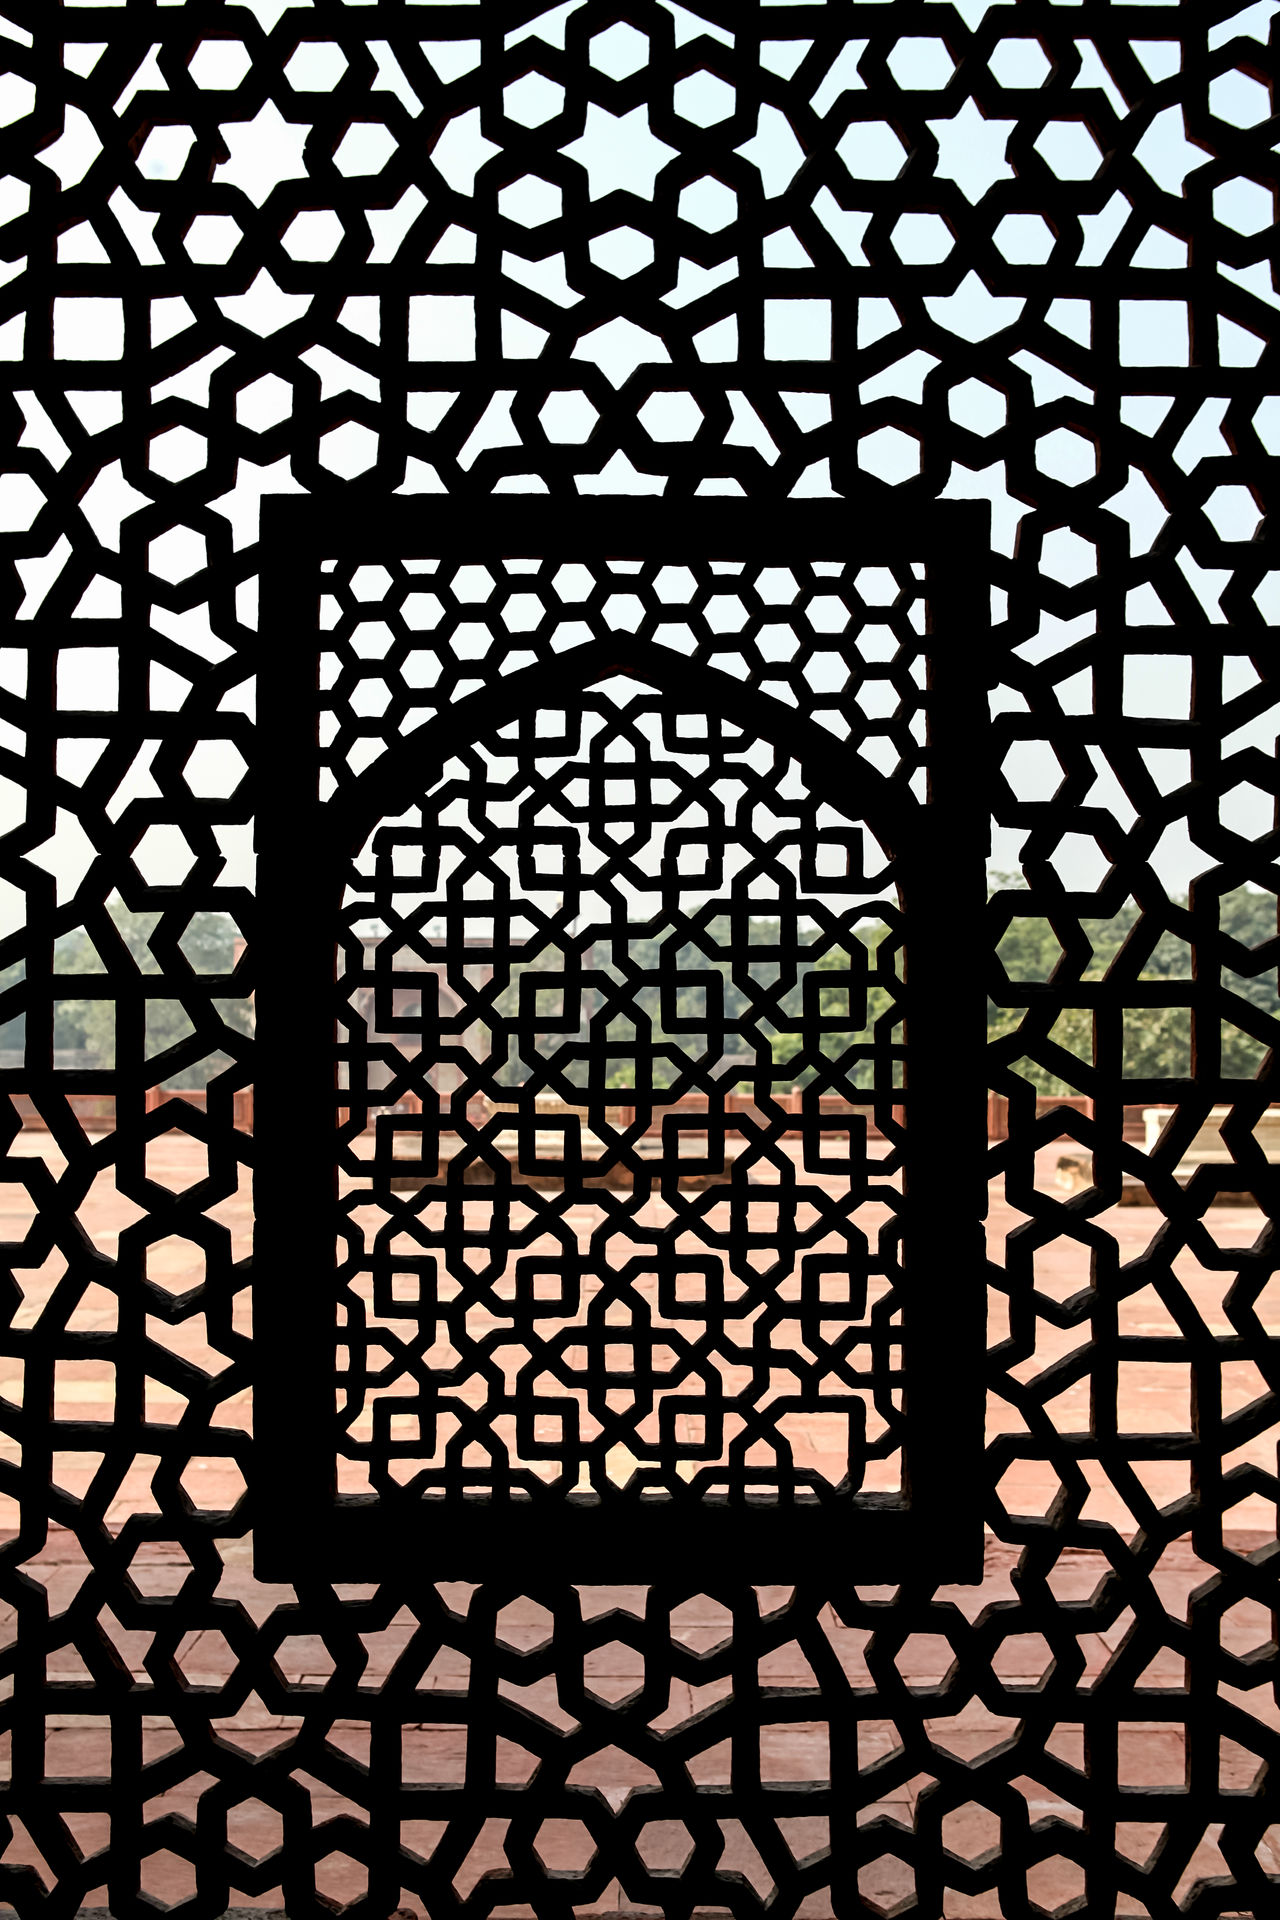 pattern Architectural HumayunTomb India Geometric Shapes Geometric Craftmanship Stone Craft Jali Indoors  built structure Full Frame Design Backgrounds Architecture Grid Day